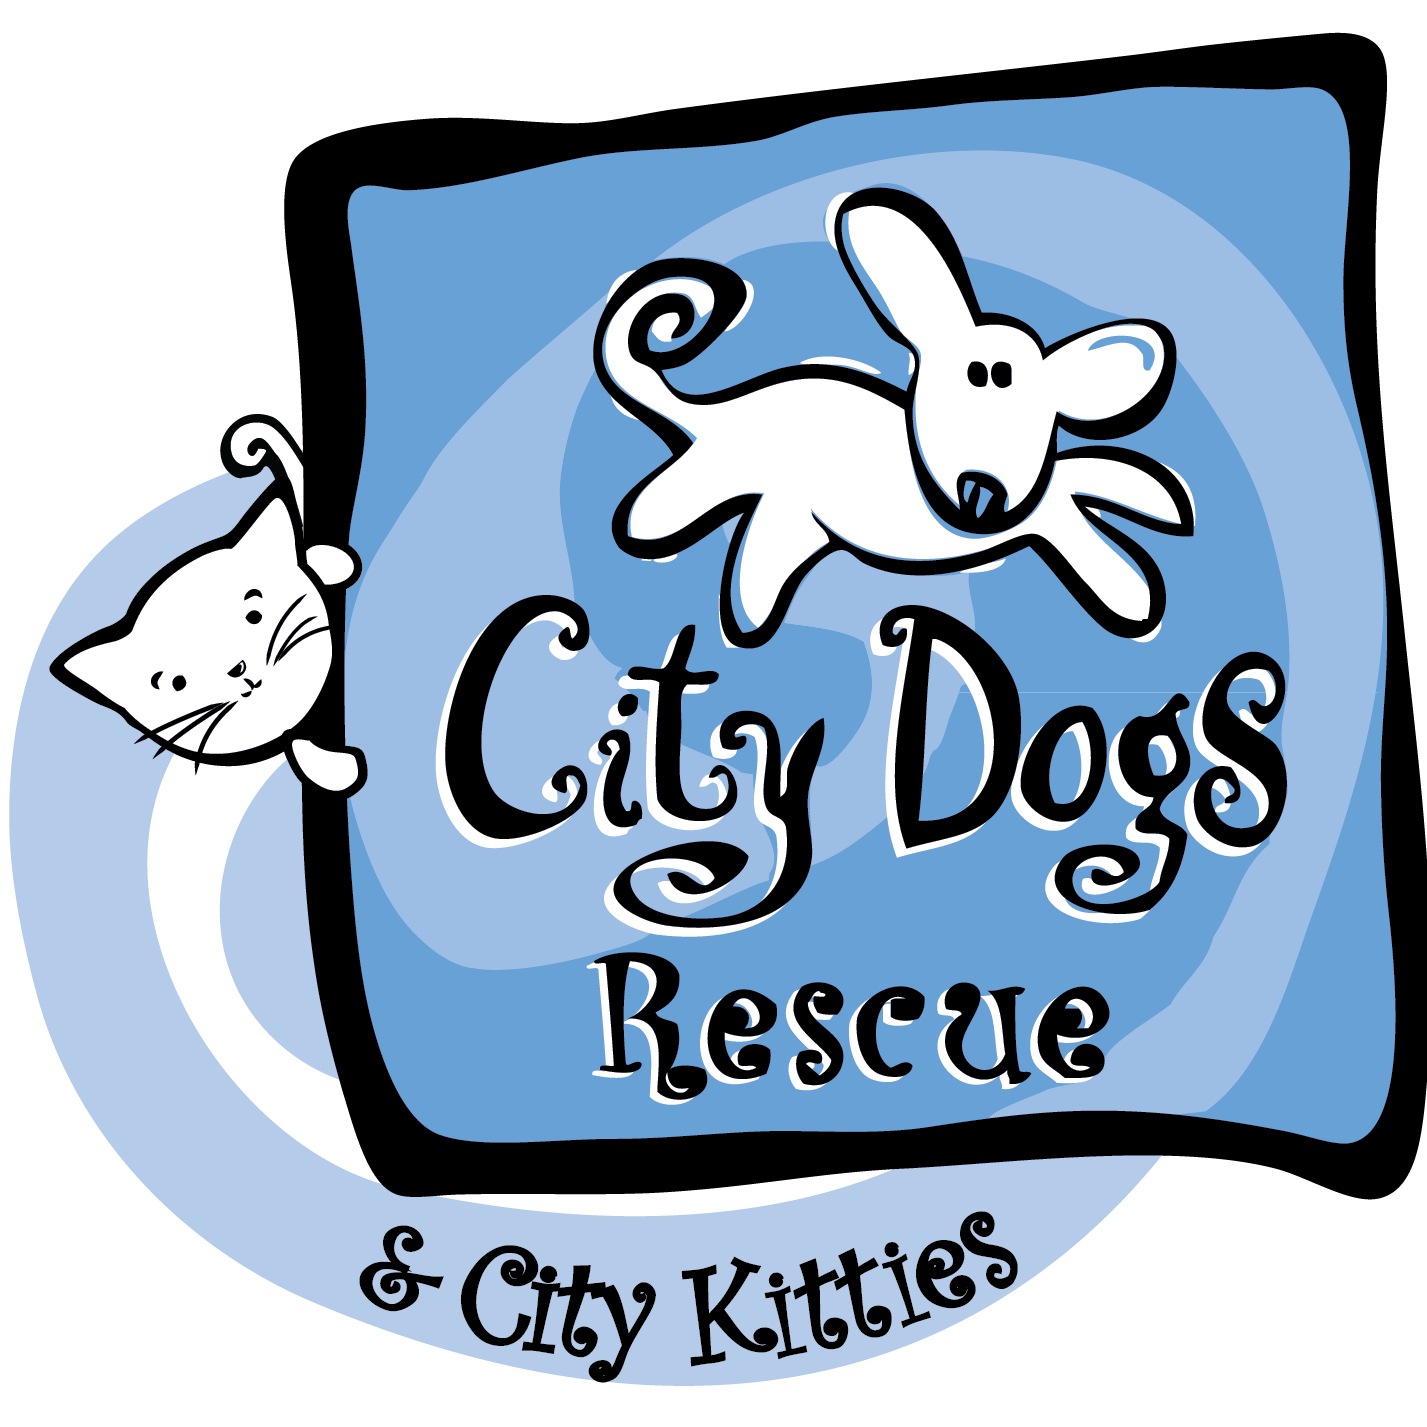 City Dogs and City Kitties Rescue